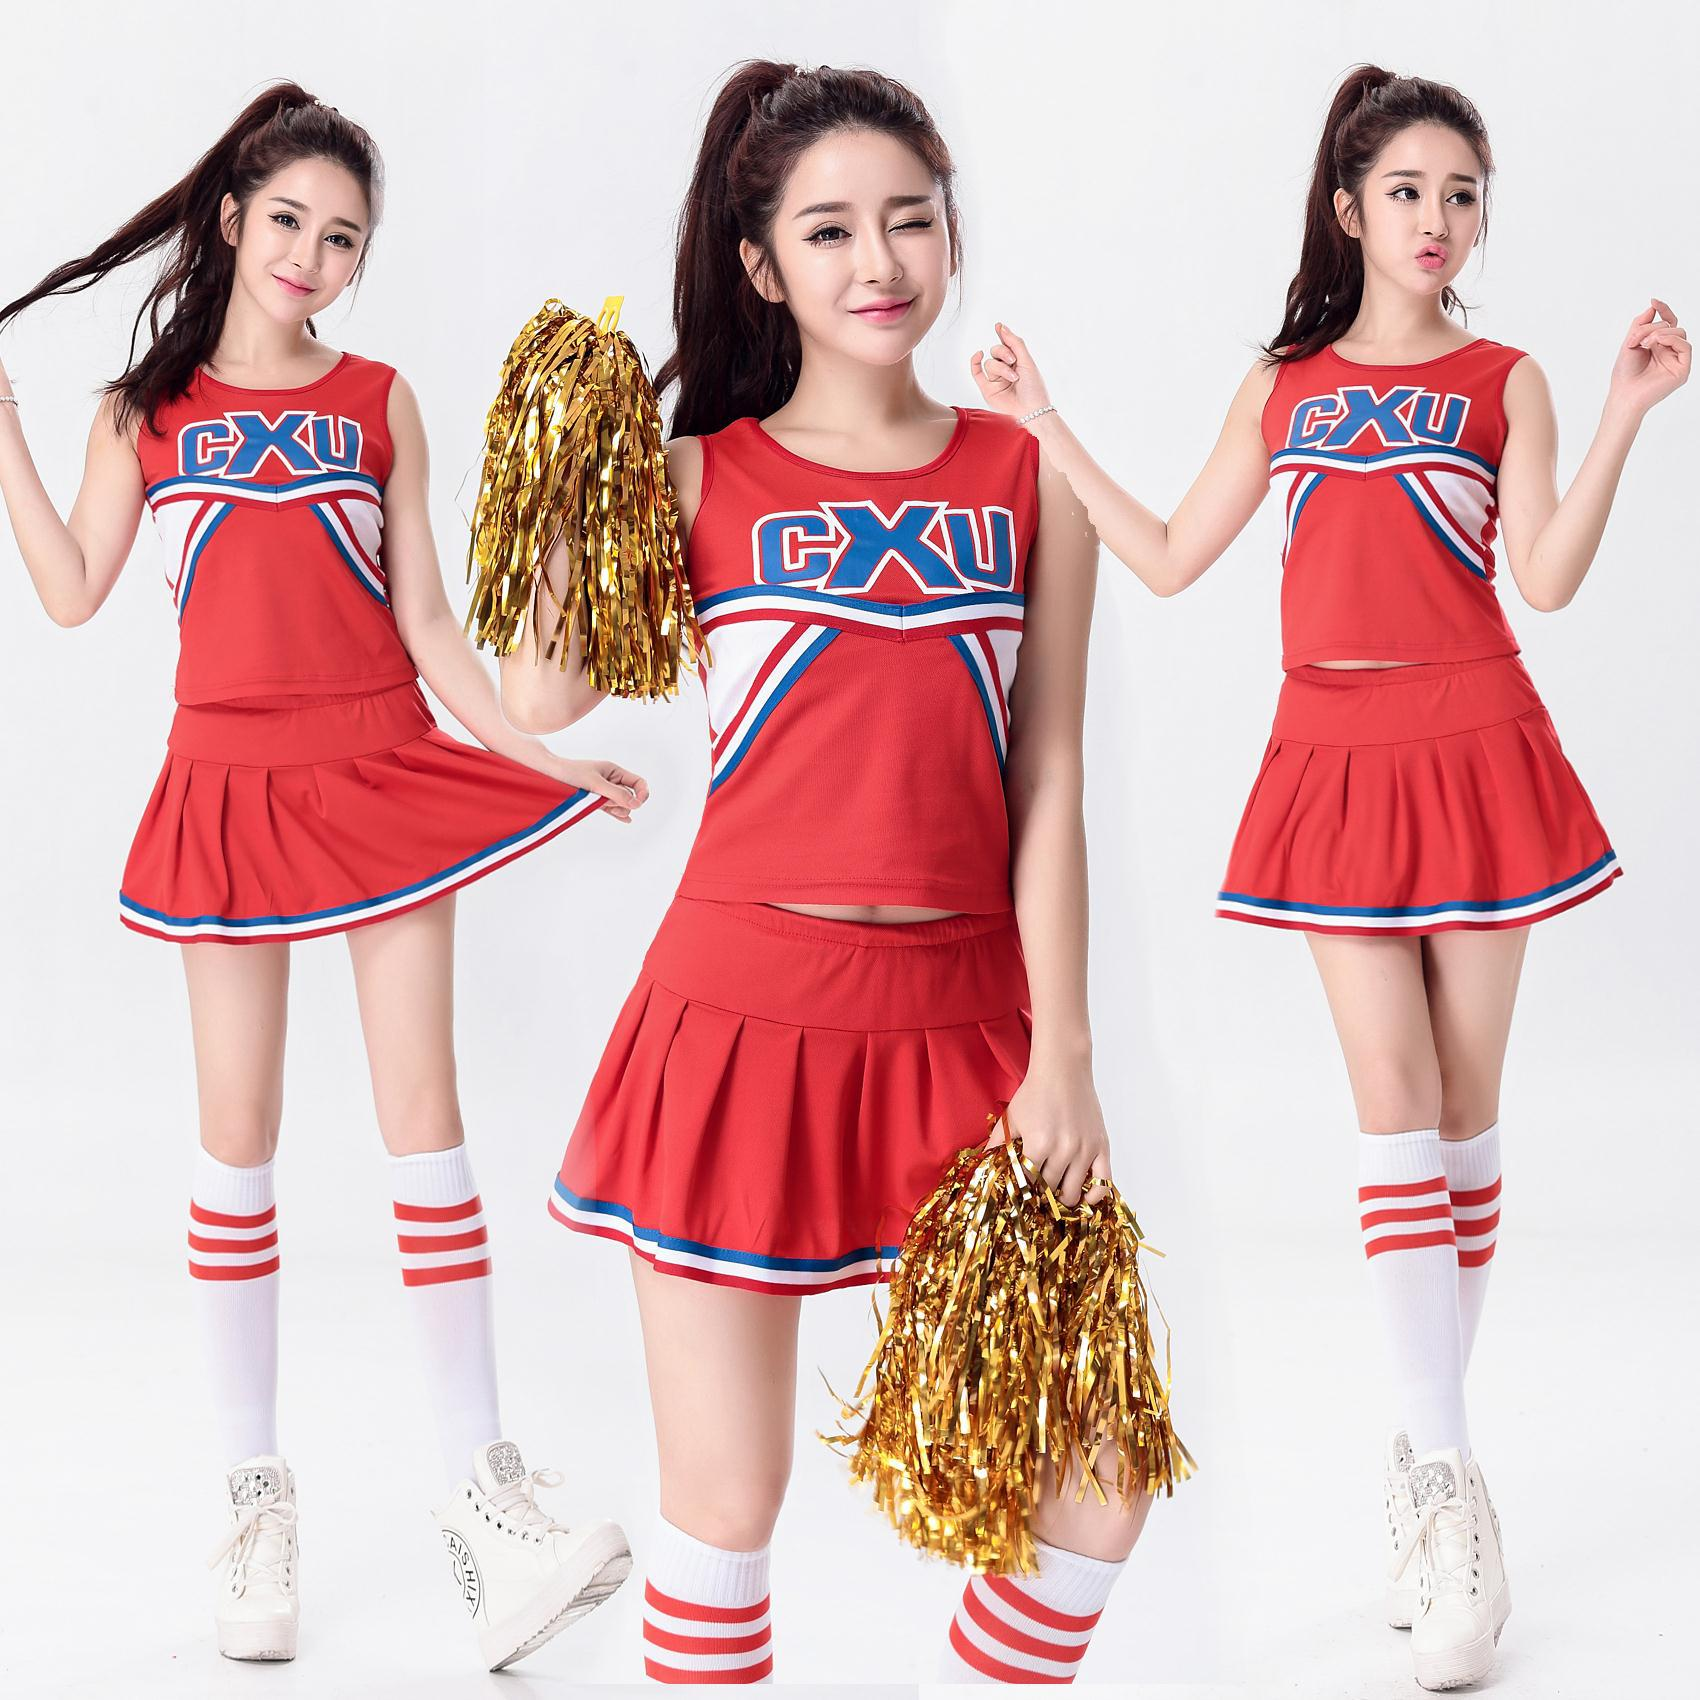 High School Girl Cheerleader Costume Cheer Uniform Cheerleading Dress Sexy School Girls Uniform Nihtclub Party Outfits Football girl